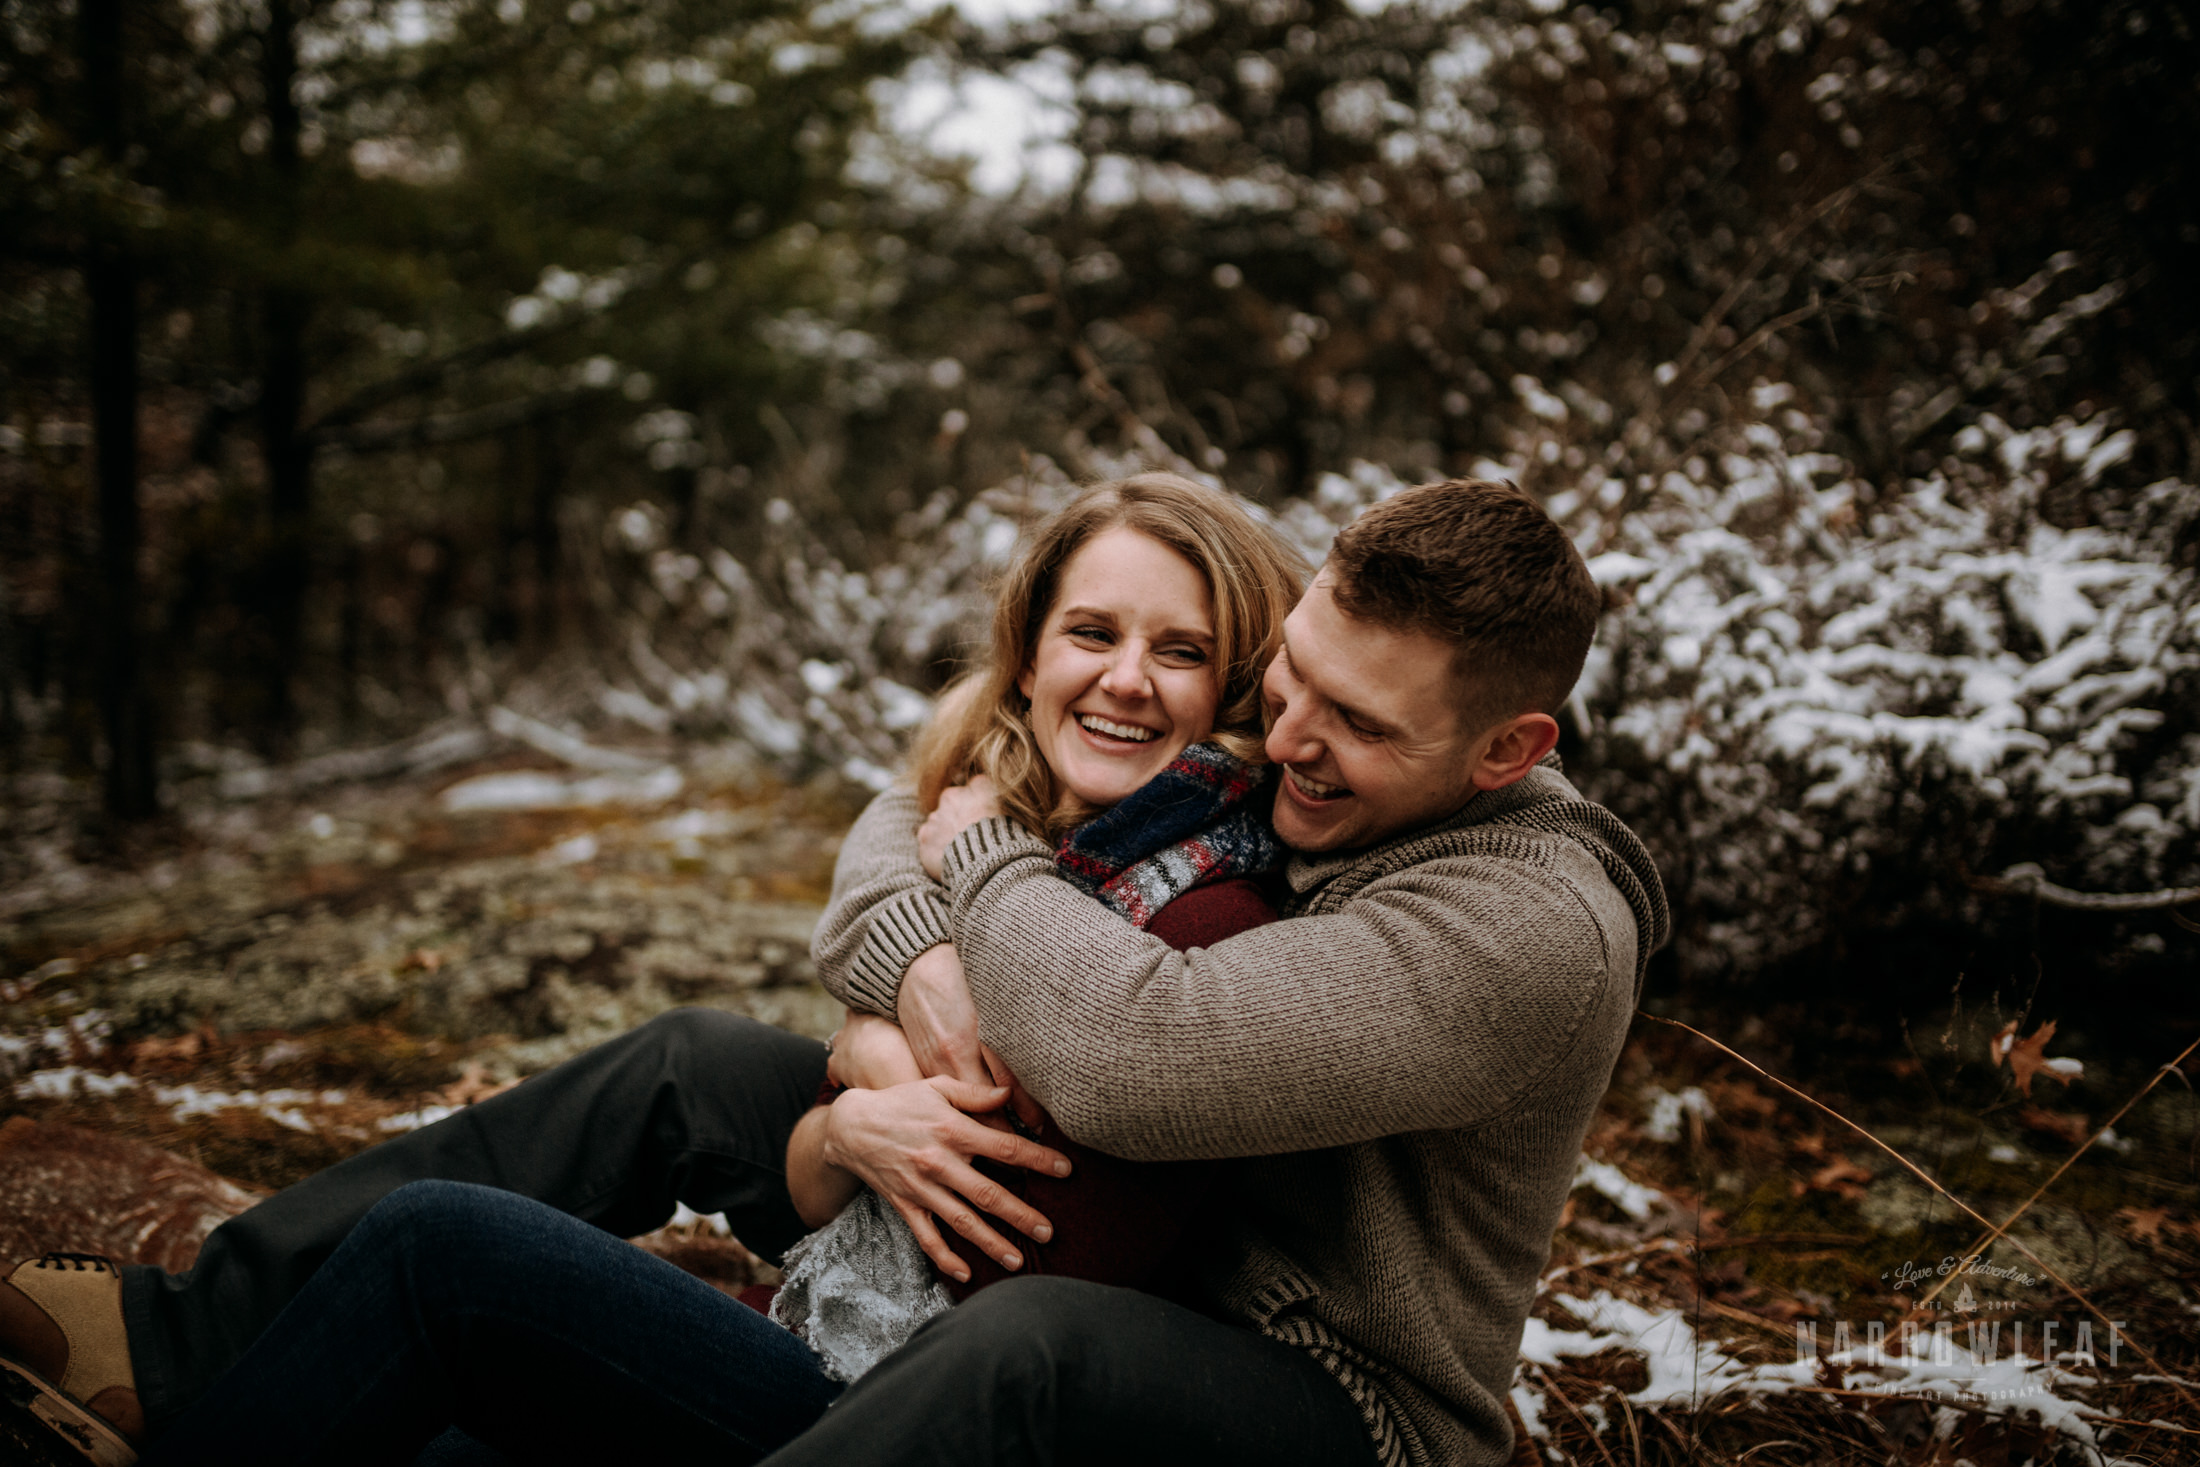 wisconsin-winter-adventure-engagement-in-the-woods-Narrowleaf_Love_and_Adventure_Photography-0284.jpg